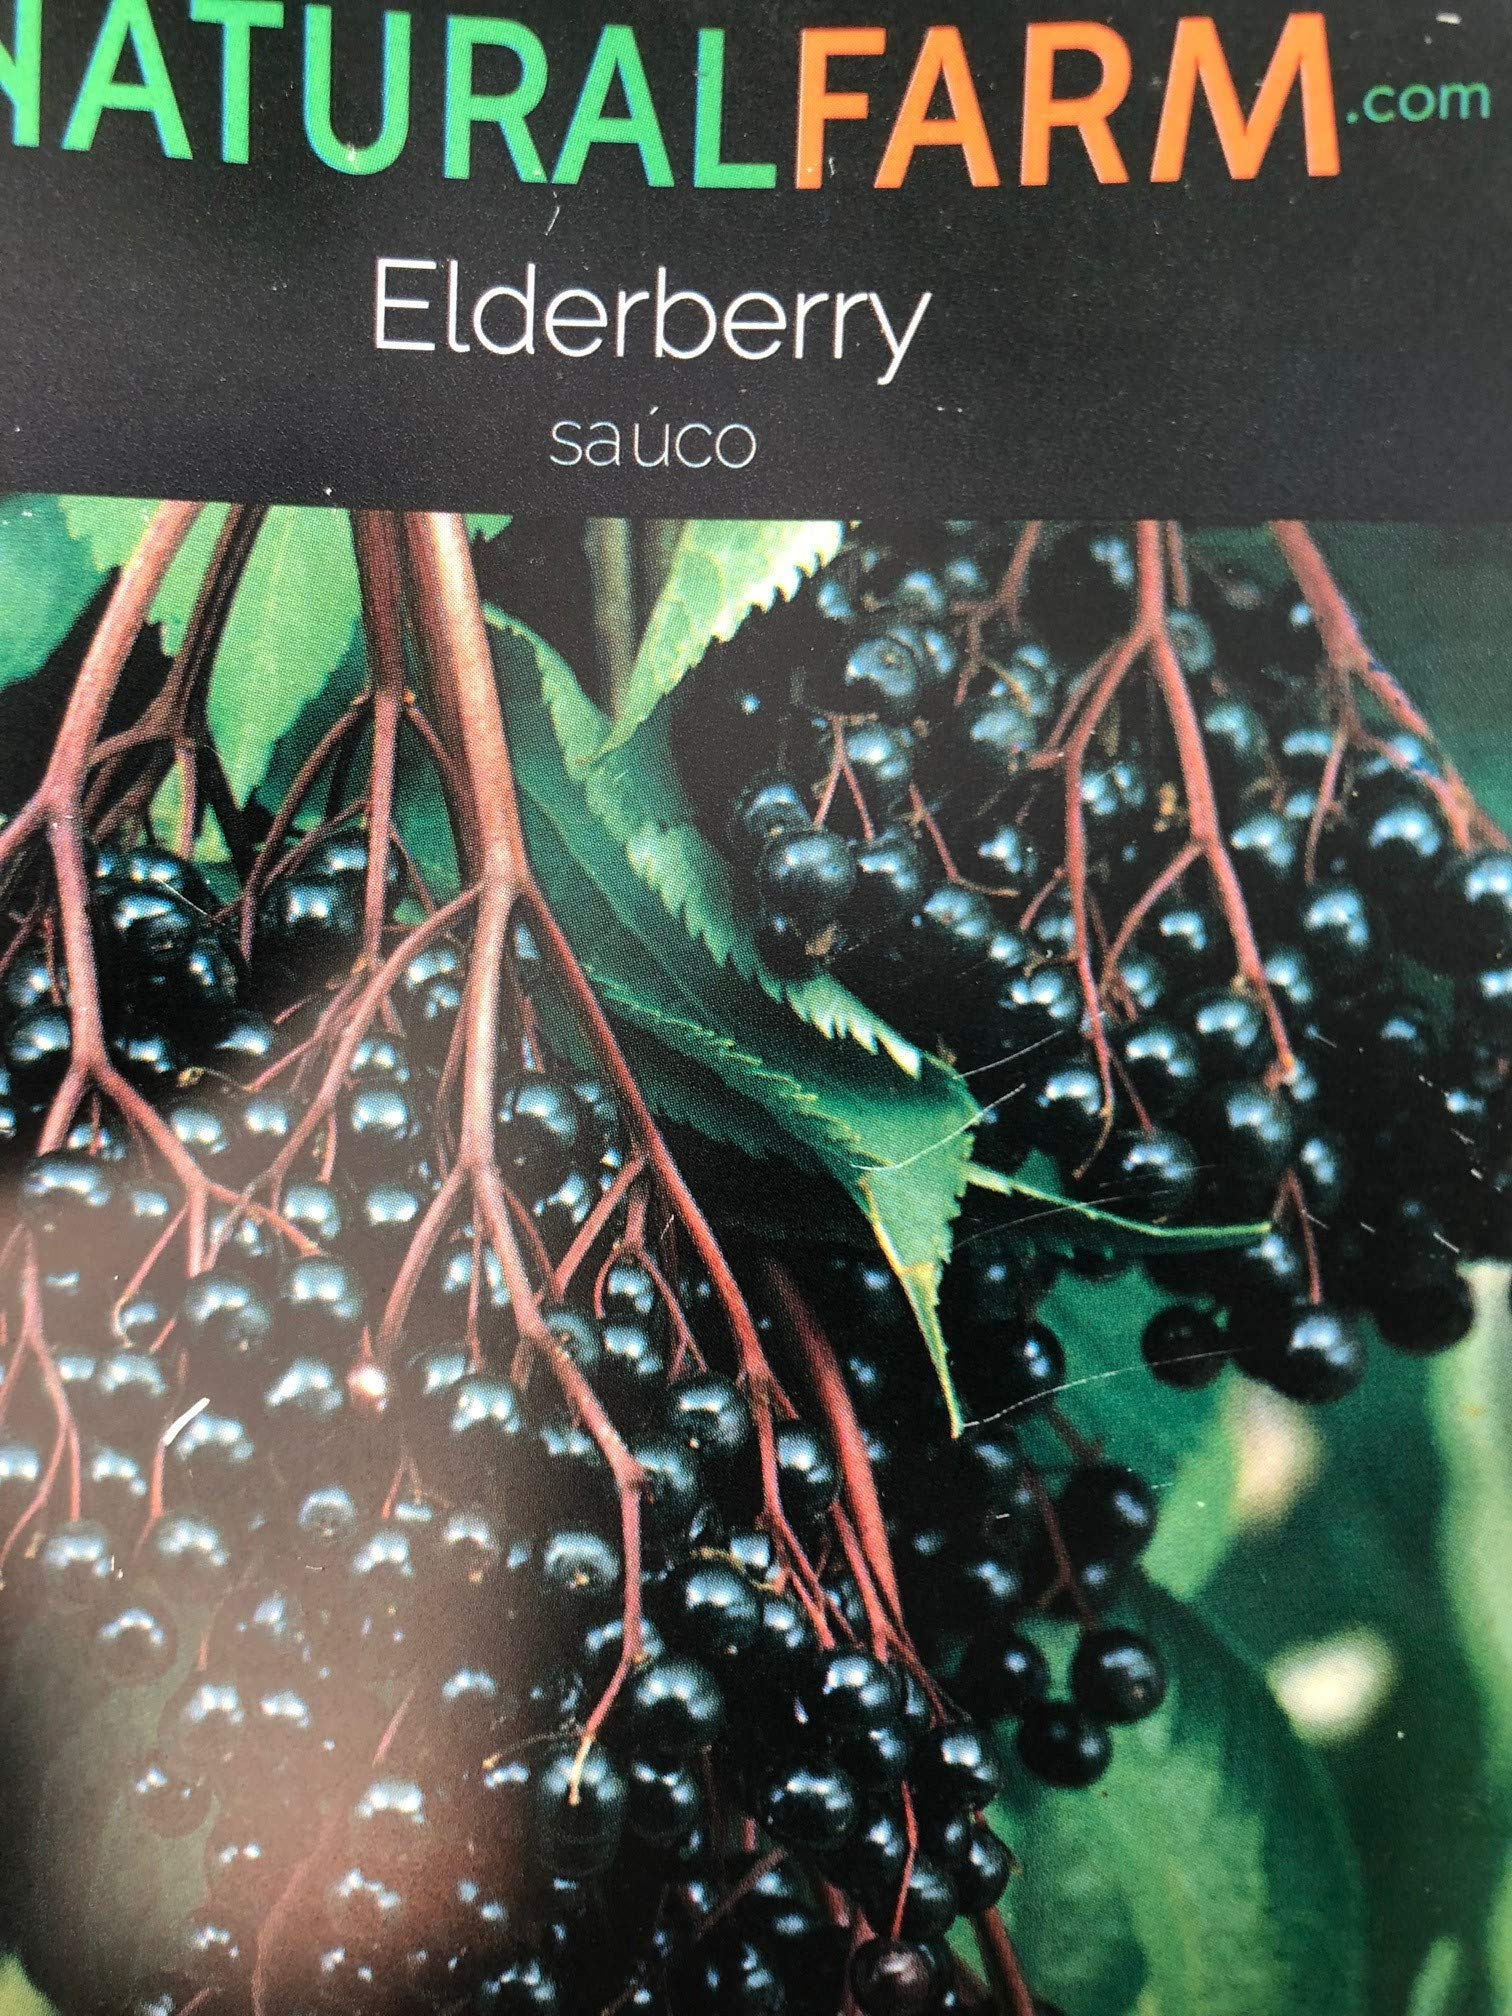 Elderberry Sambucus nigra Live Plant 2' Tall with Leaves in 4.5'' Pot Grown organically, Quality Assurance, Will Fruit in 2019 by A Natural Farm & Educational Center